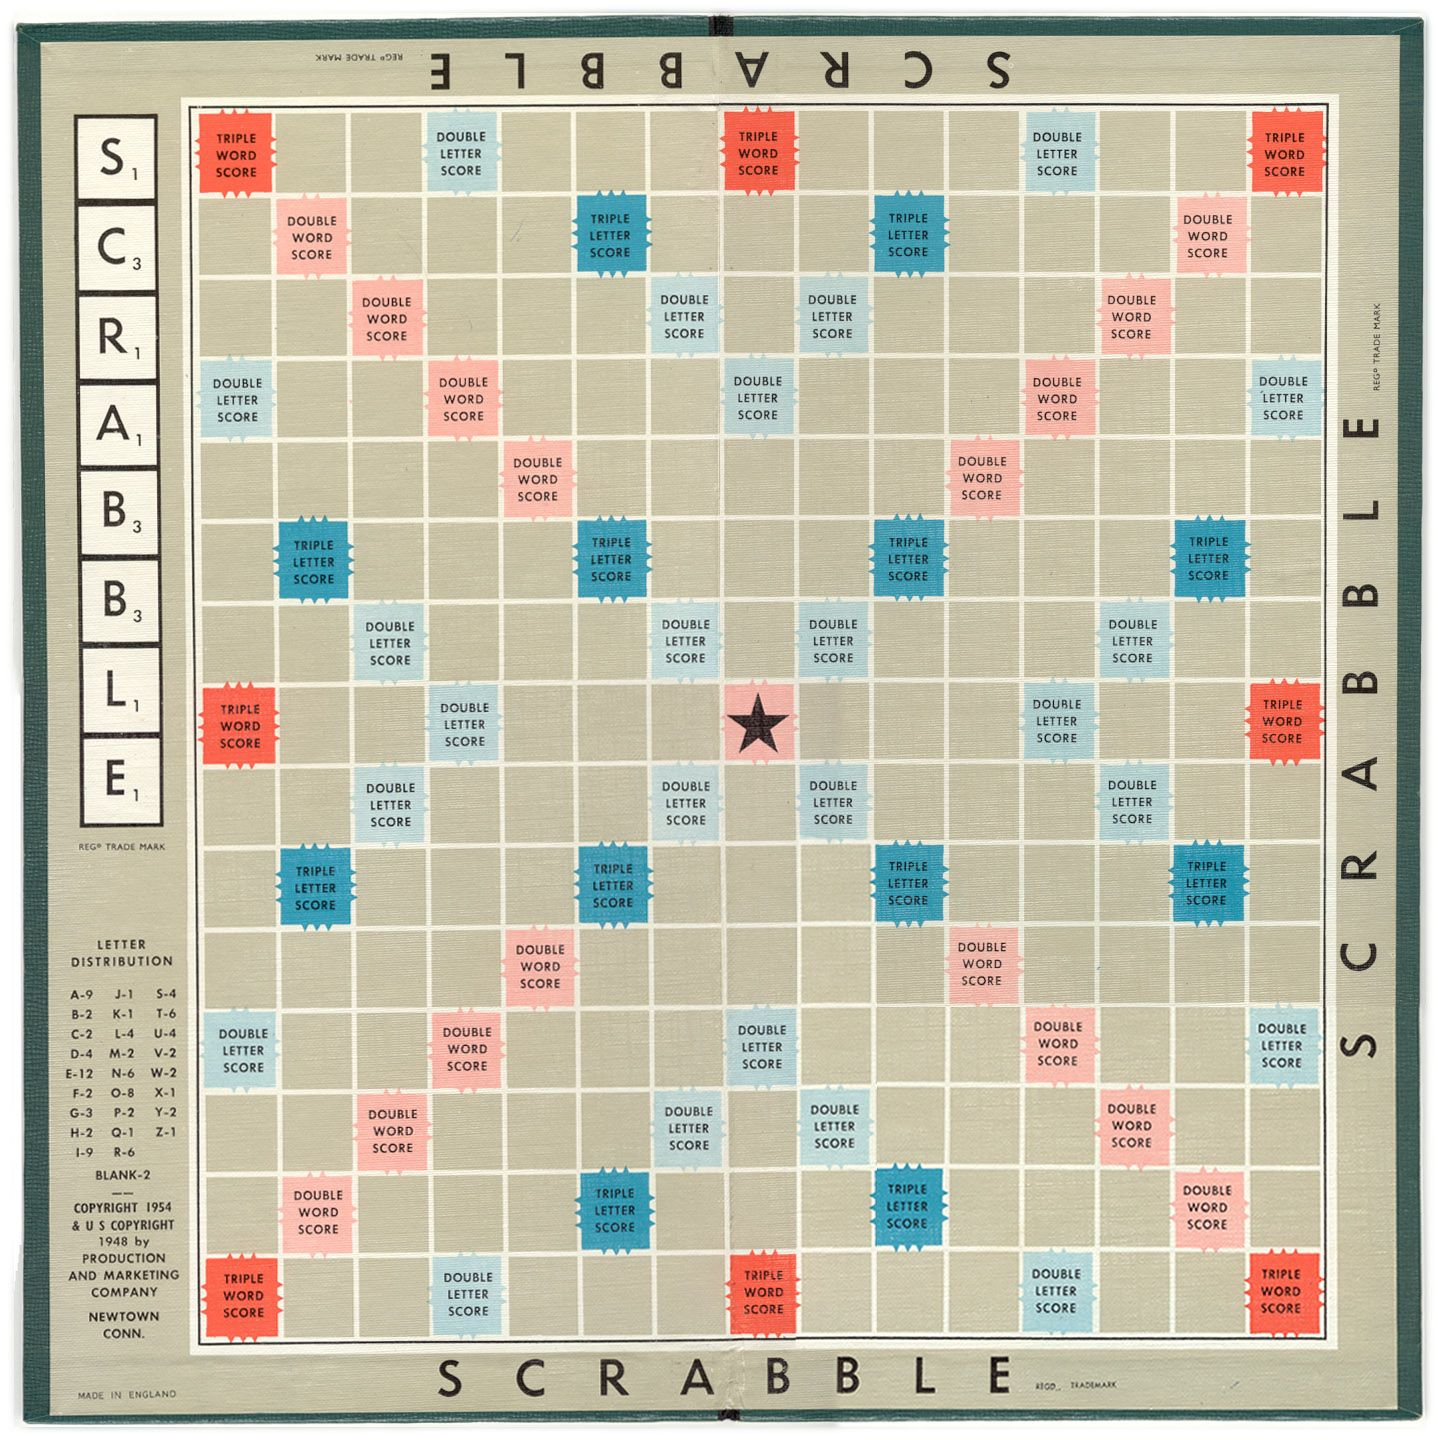 scrabble2 | Scrabble, April 13 and Scrabble board